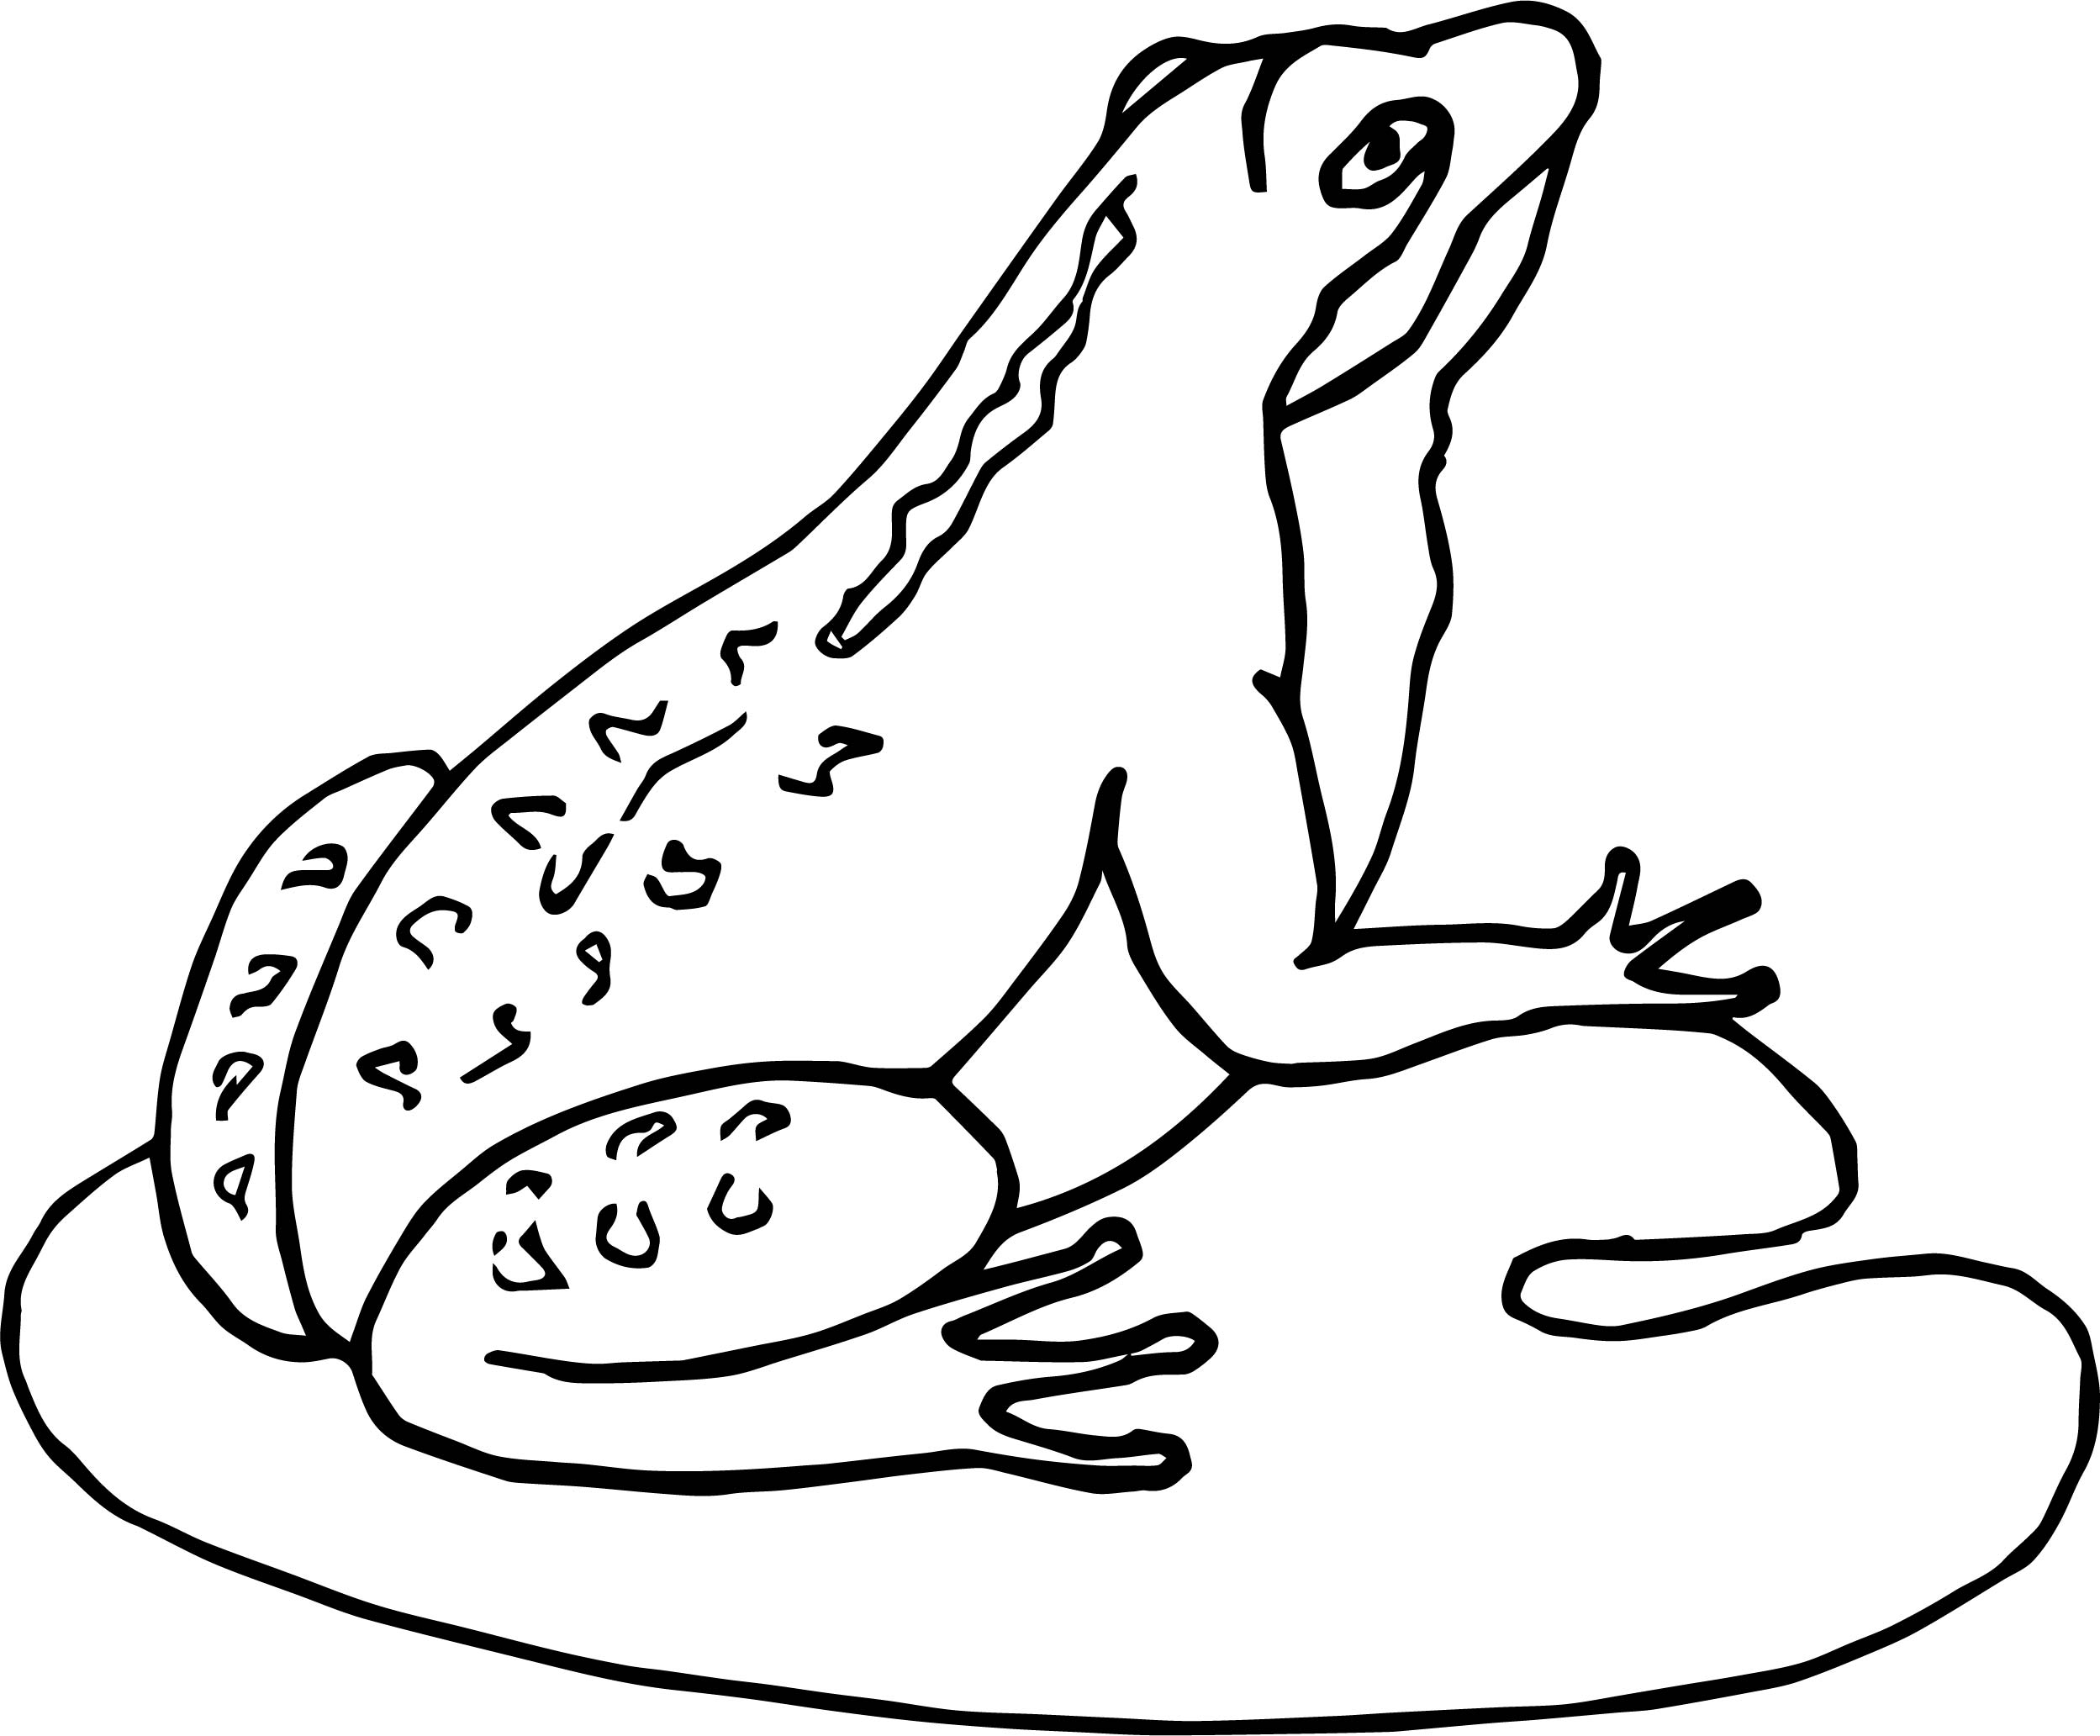 Frog Coloring Page 020